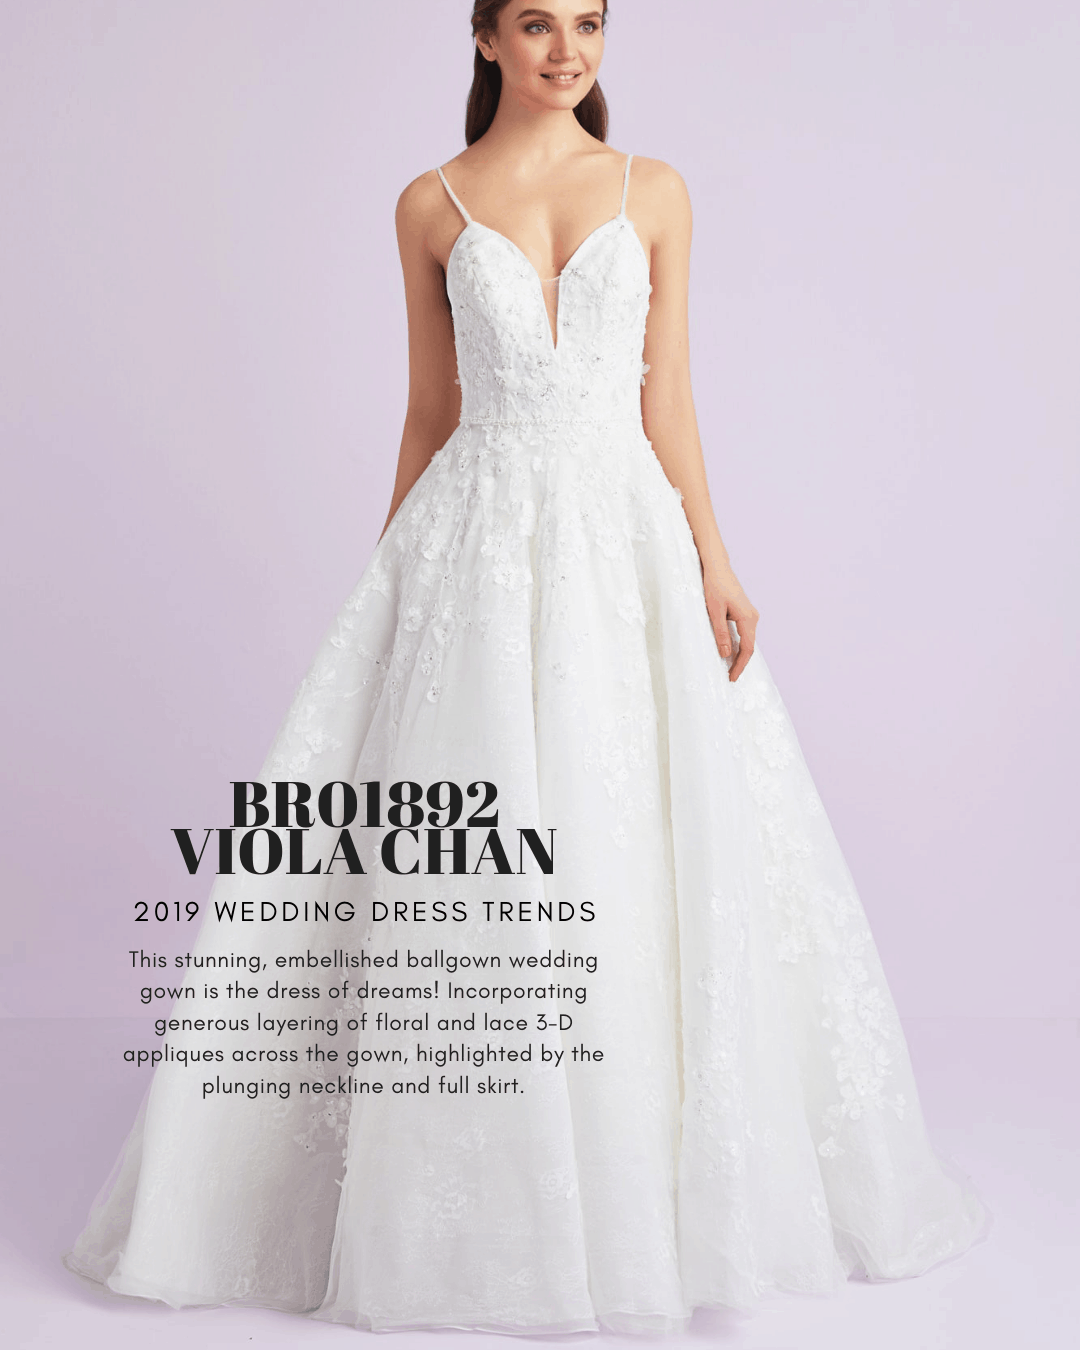 b4887debaa24 2019 Wedding Dress Trends | Set the Aisle Alight with these Styles